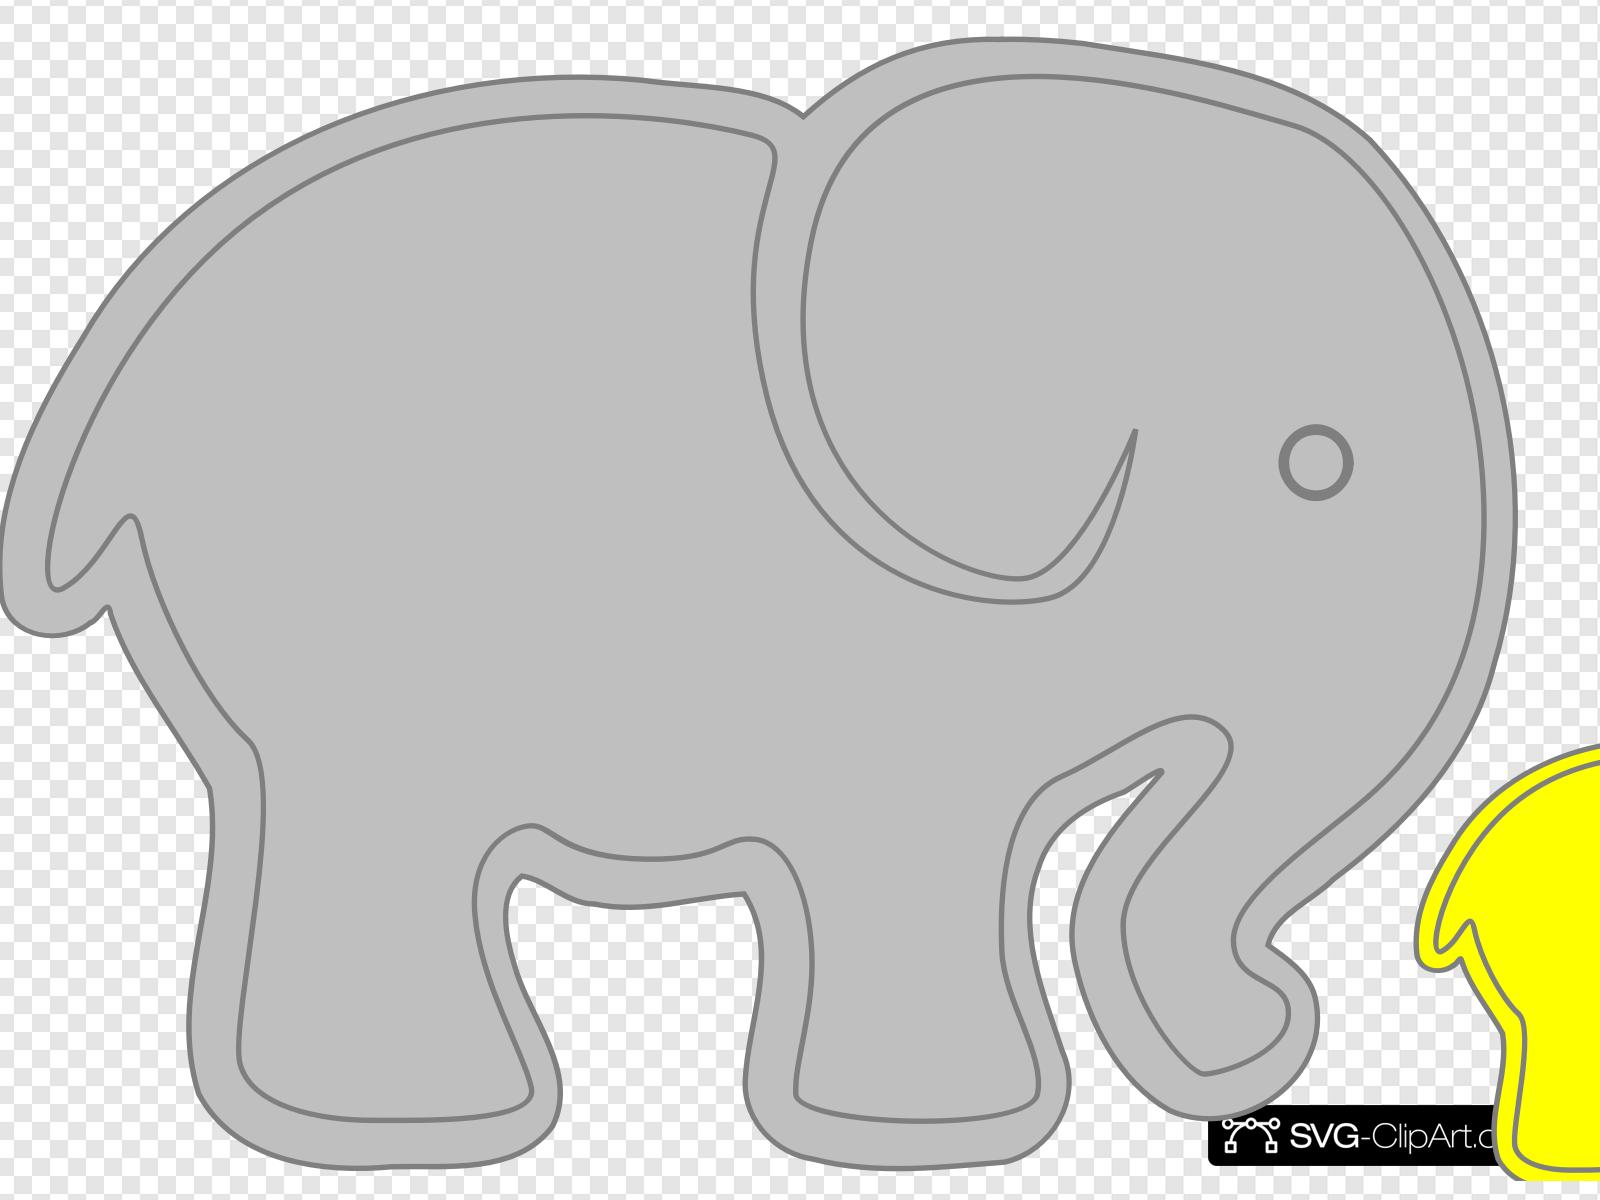 Baby and adult animal clipart clip transparent Adult Elephant With Baby Elephant Clip art, Icon and SVG - SVG Clipart clip transparent